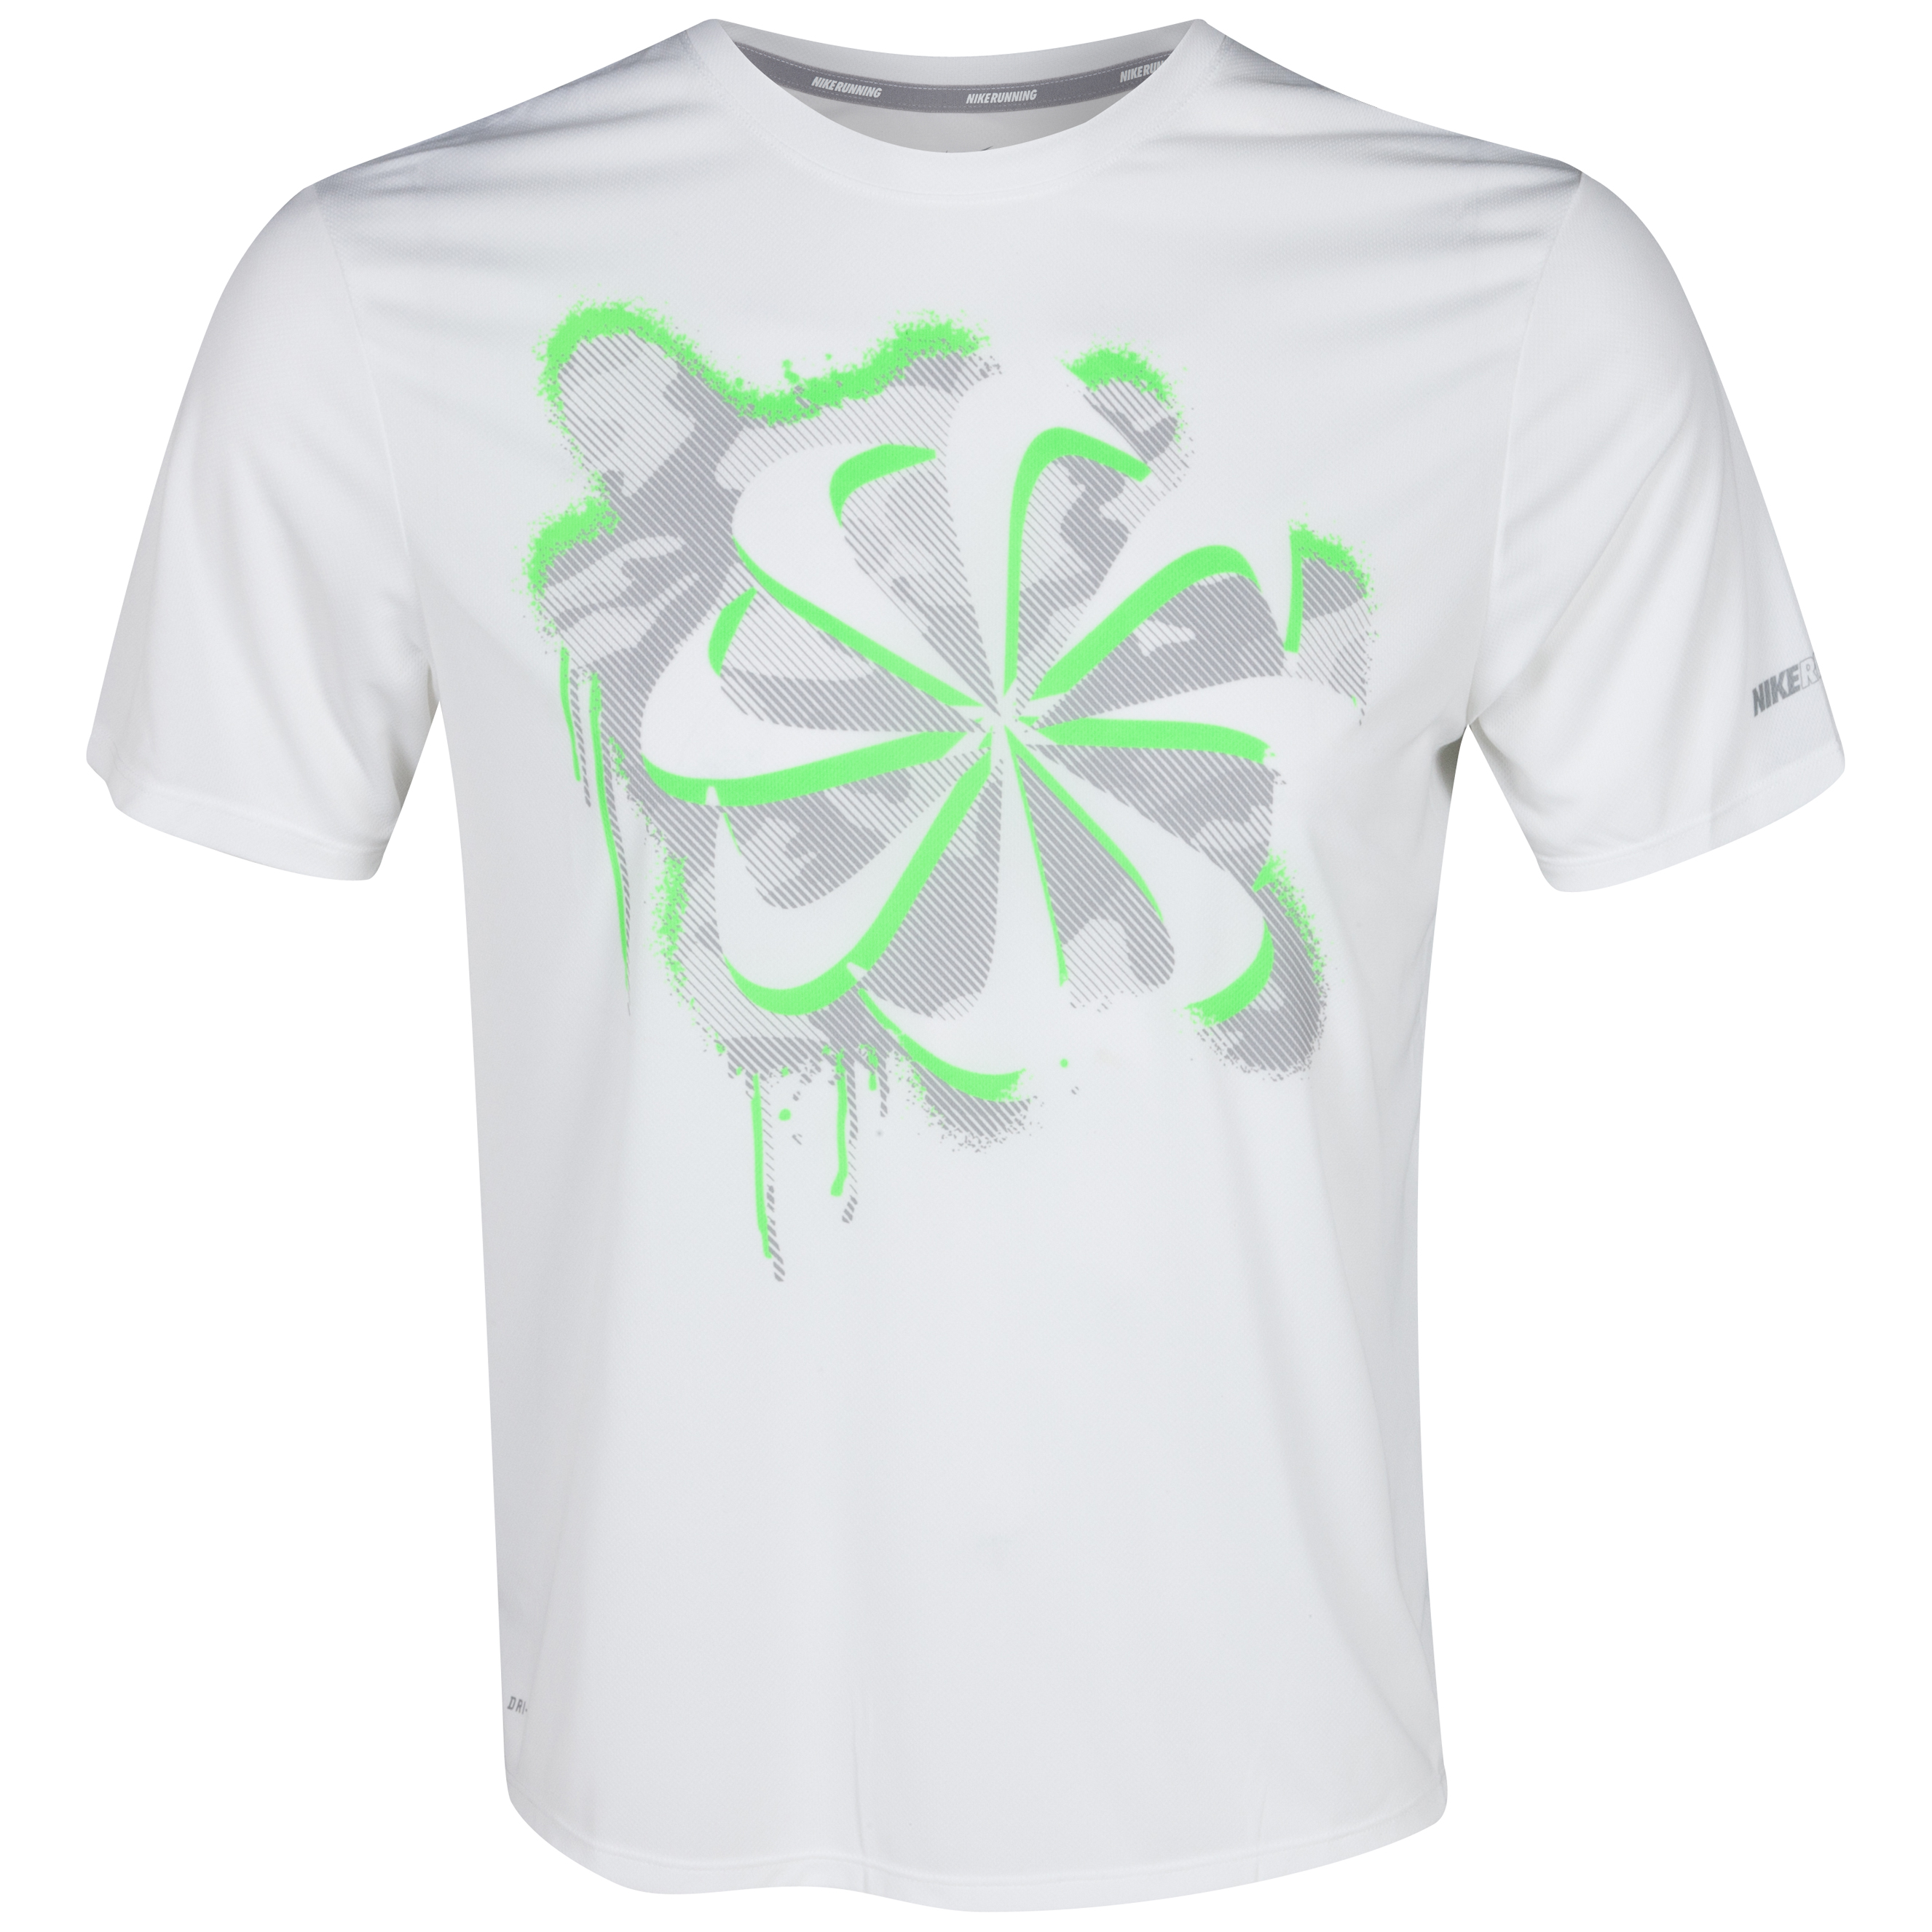 Nike Challenger Swoosh Run T-Shirt - Sequoia/Electric Green/Reflective Silver